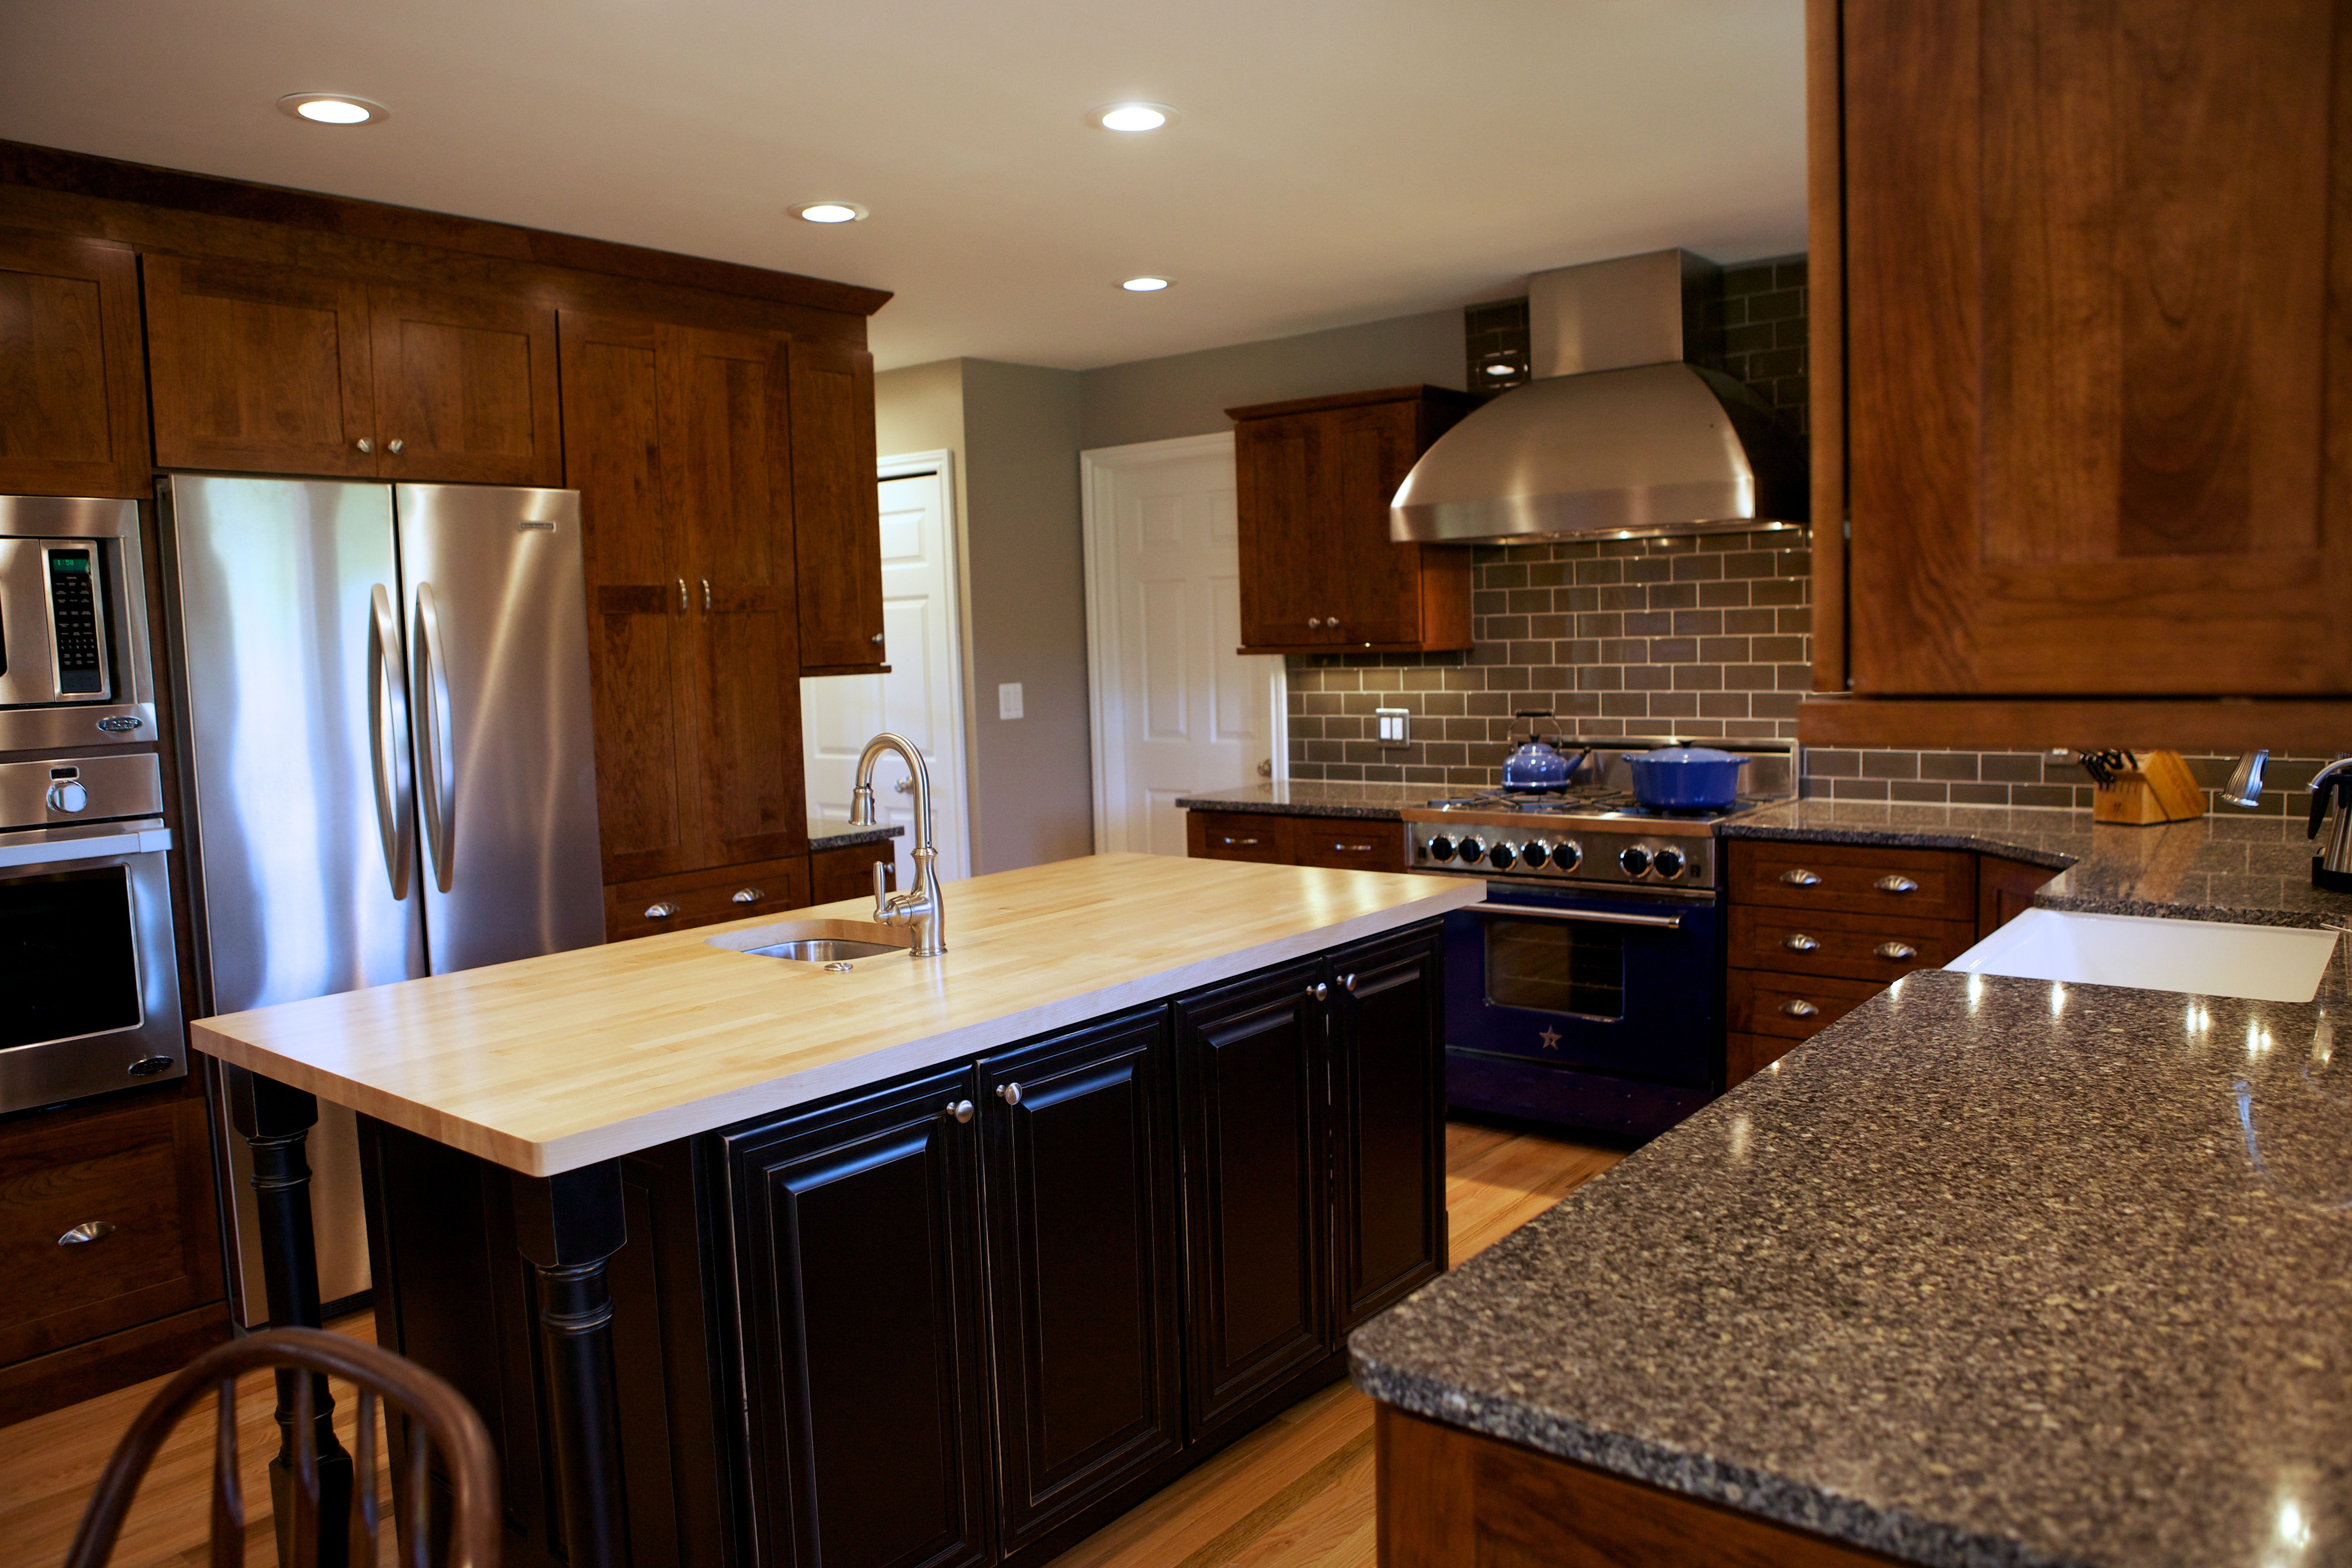 This Beautiful Kitchen Was Designed With Dura Supreme Cabinetry Dura